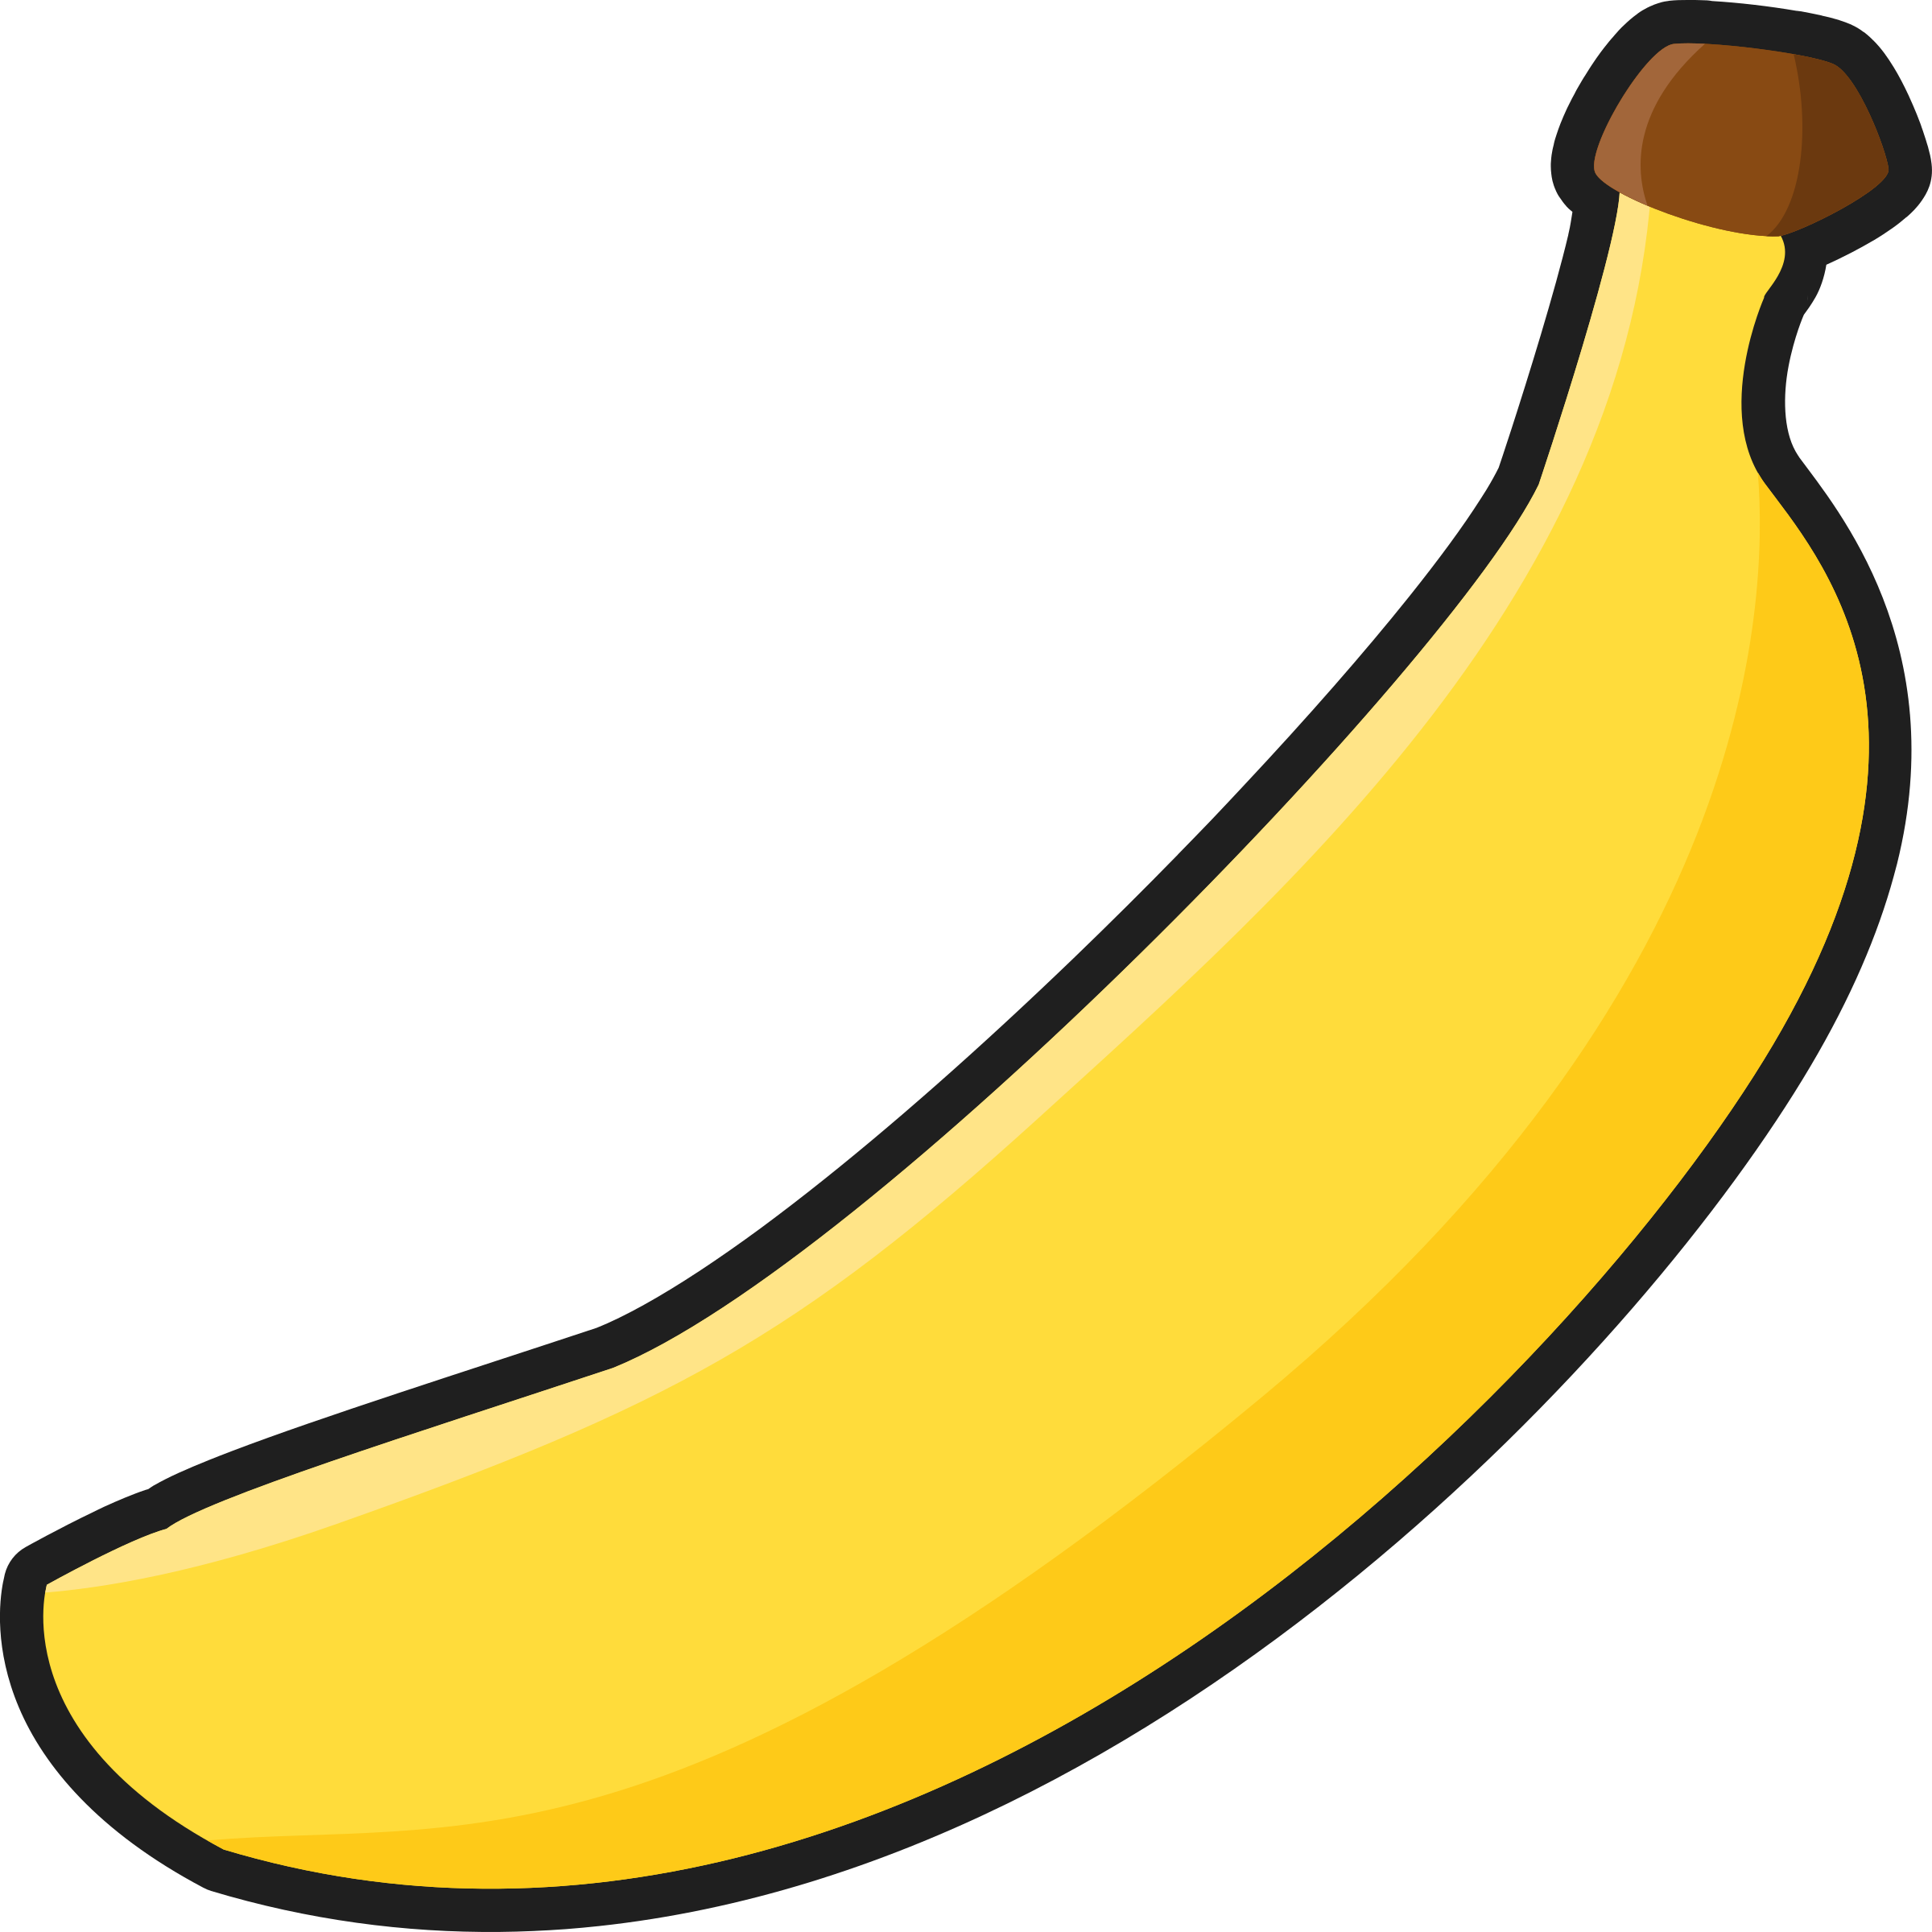 Banana clipart individual Follow Banana com clipartsgram us